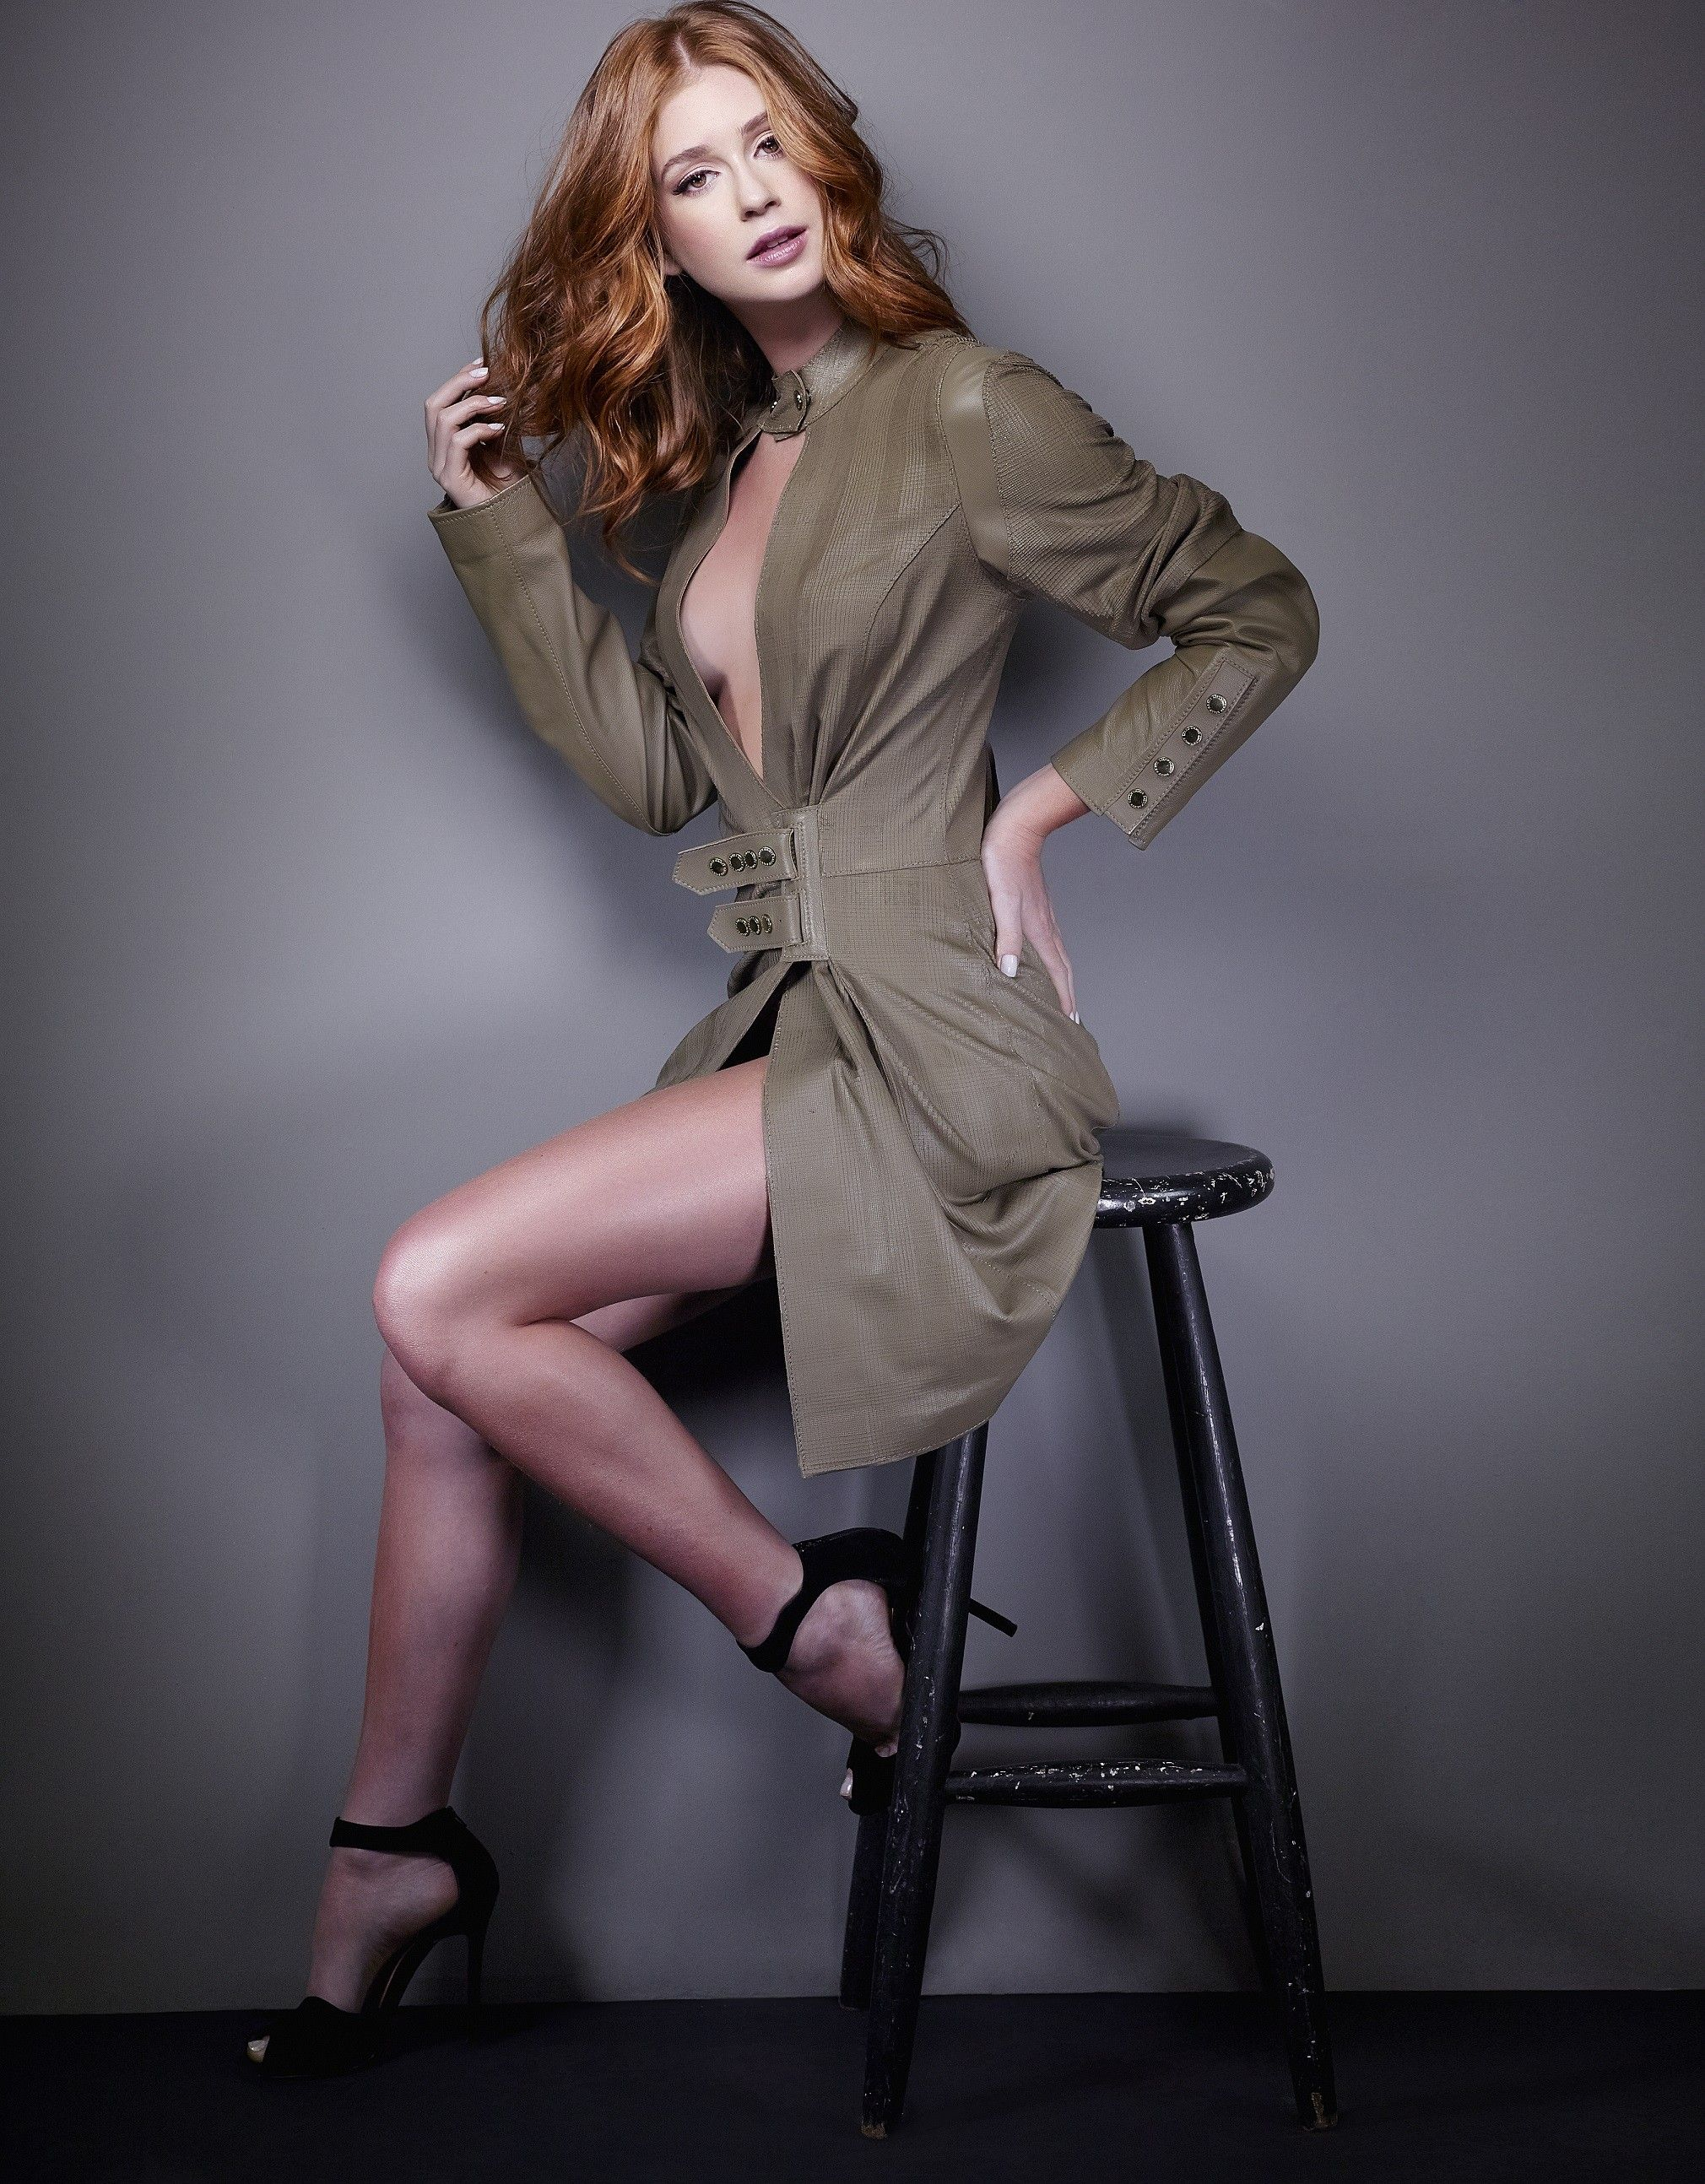 236401b447752 Marina Ruy Barbosa   Natural Redheads 2   Pinterest   Redheads, Red ...